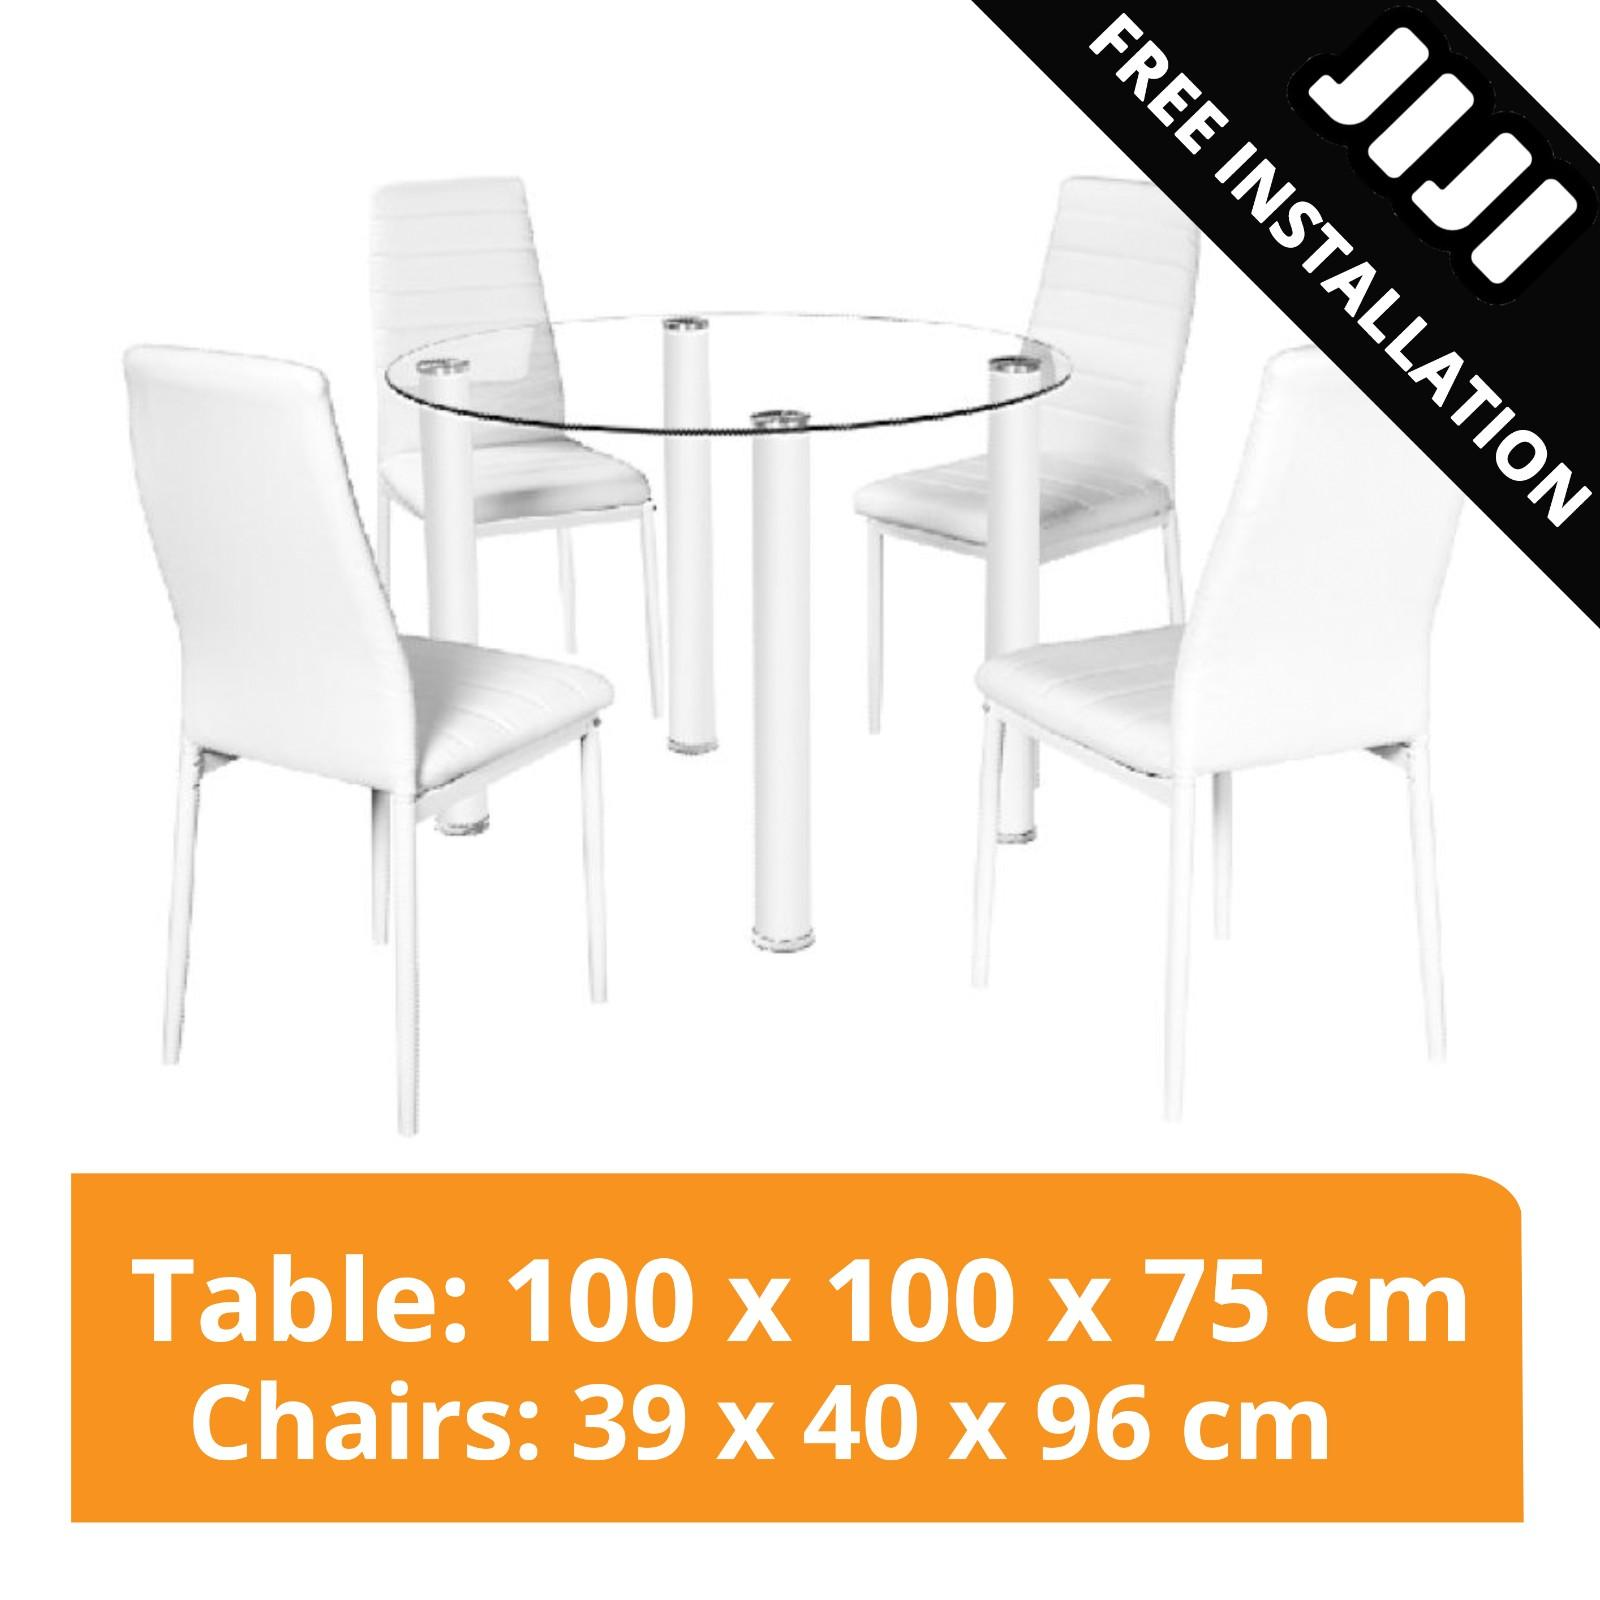 JIJI Vetro Dining Table Set (1+4) (Free Installation) - Tables / Package / Furniture (SG)